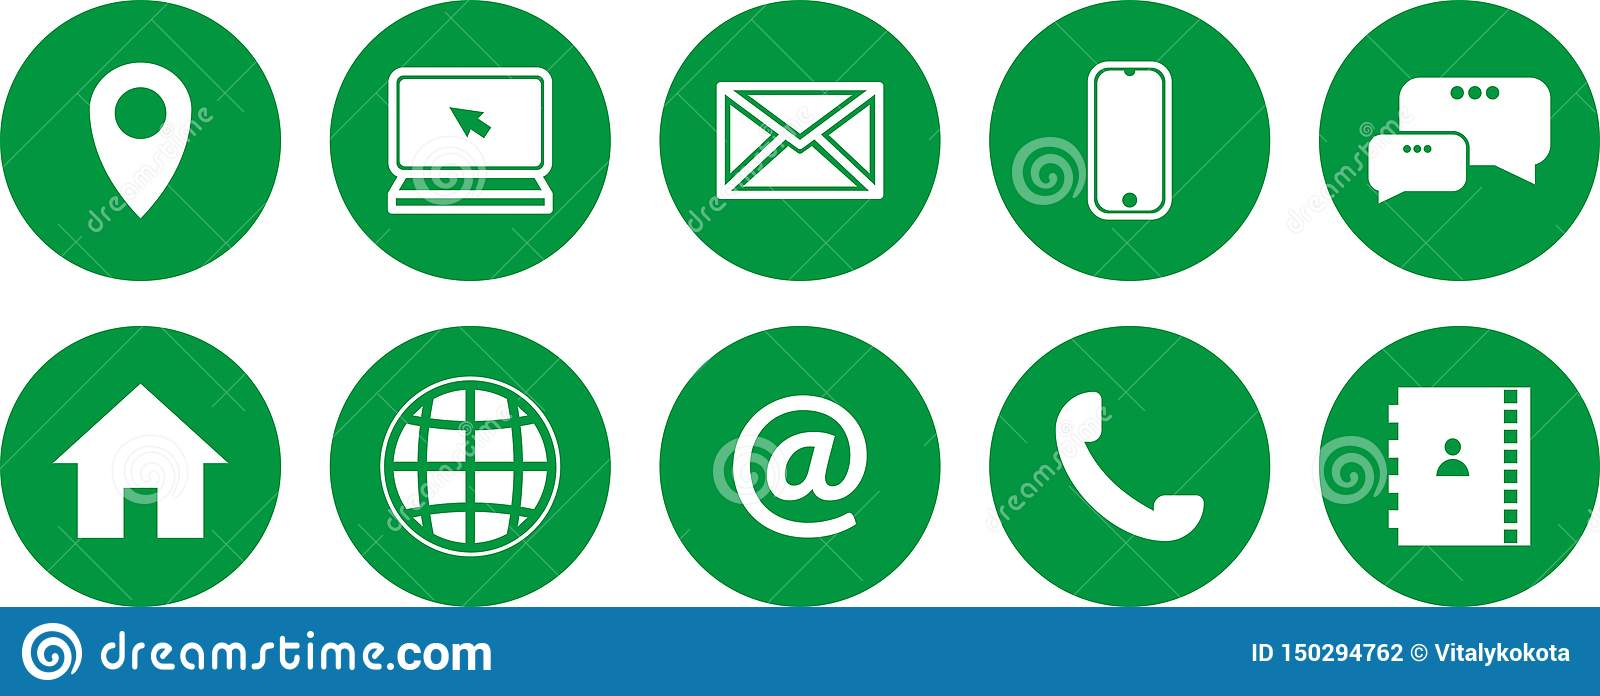 Set of green icons. communications icons. contact us icons